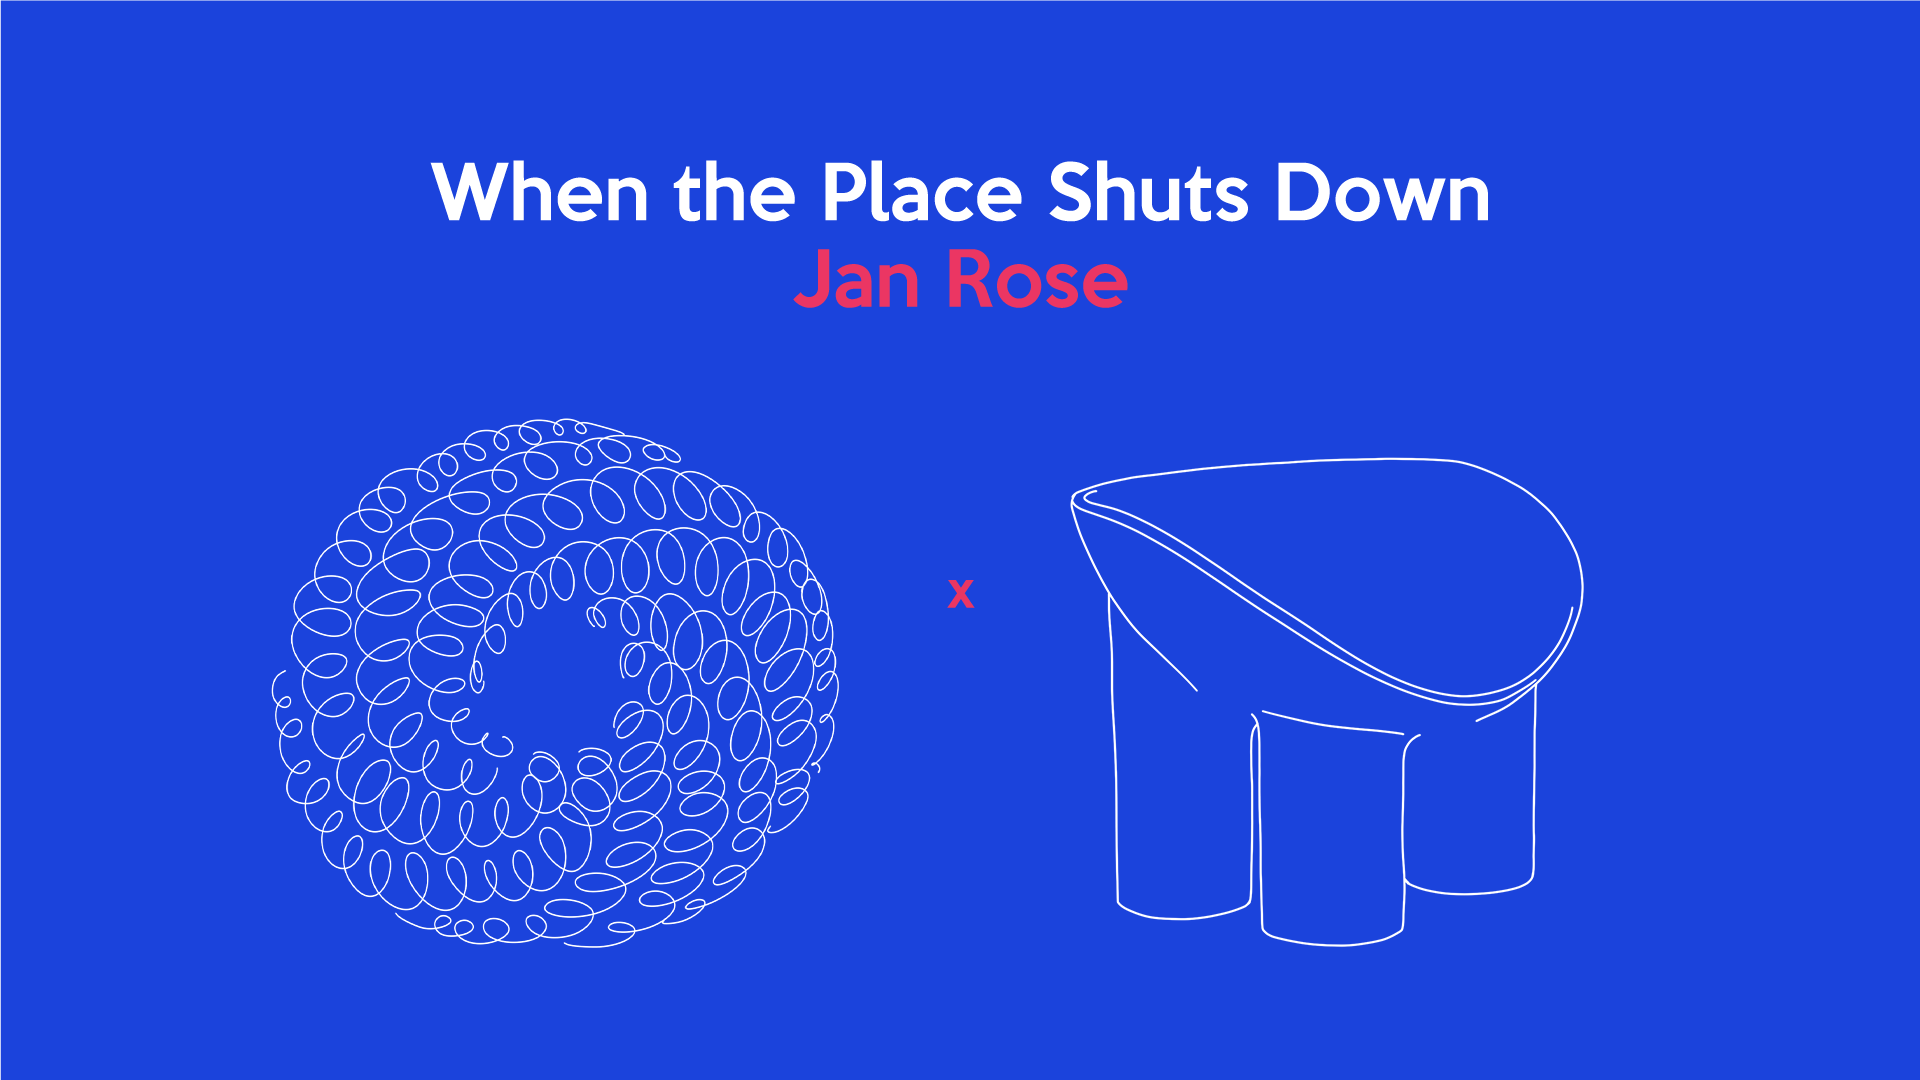 When the Place Shuts Down